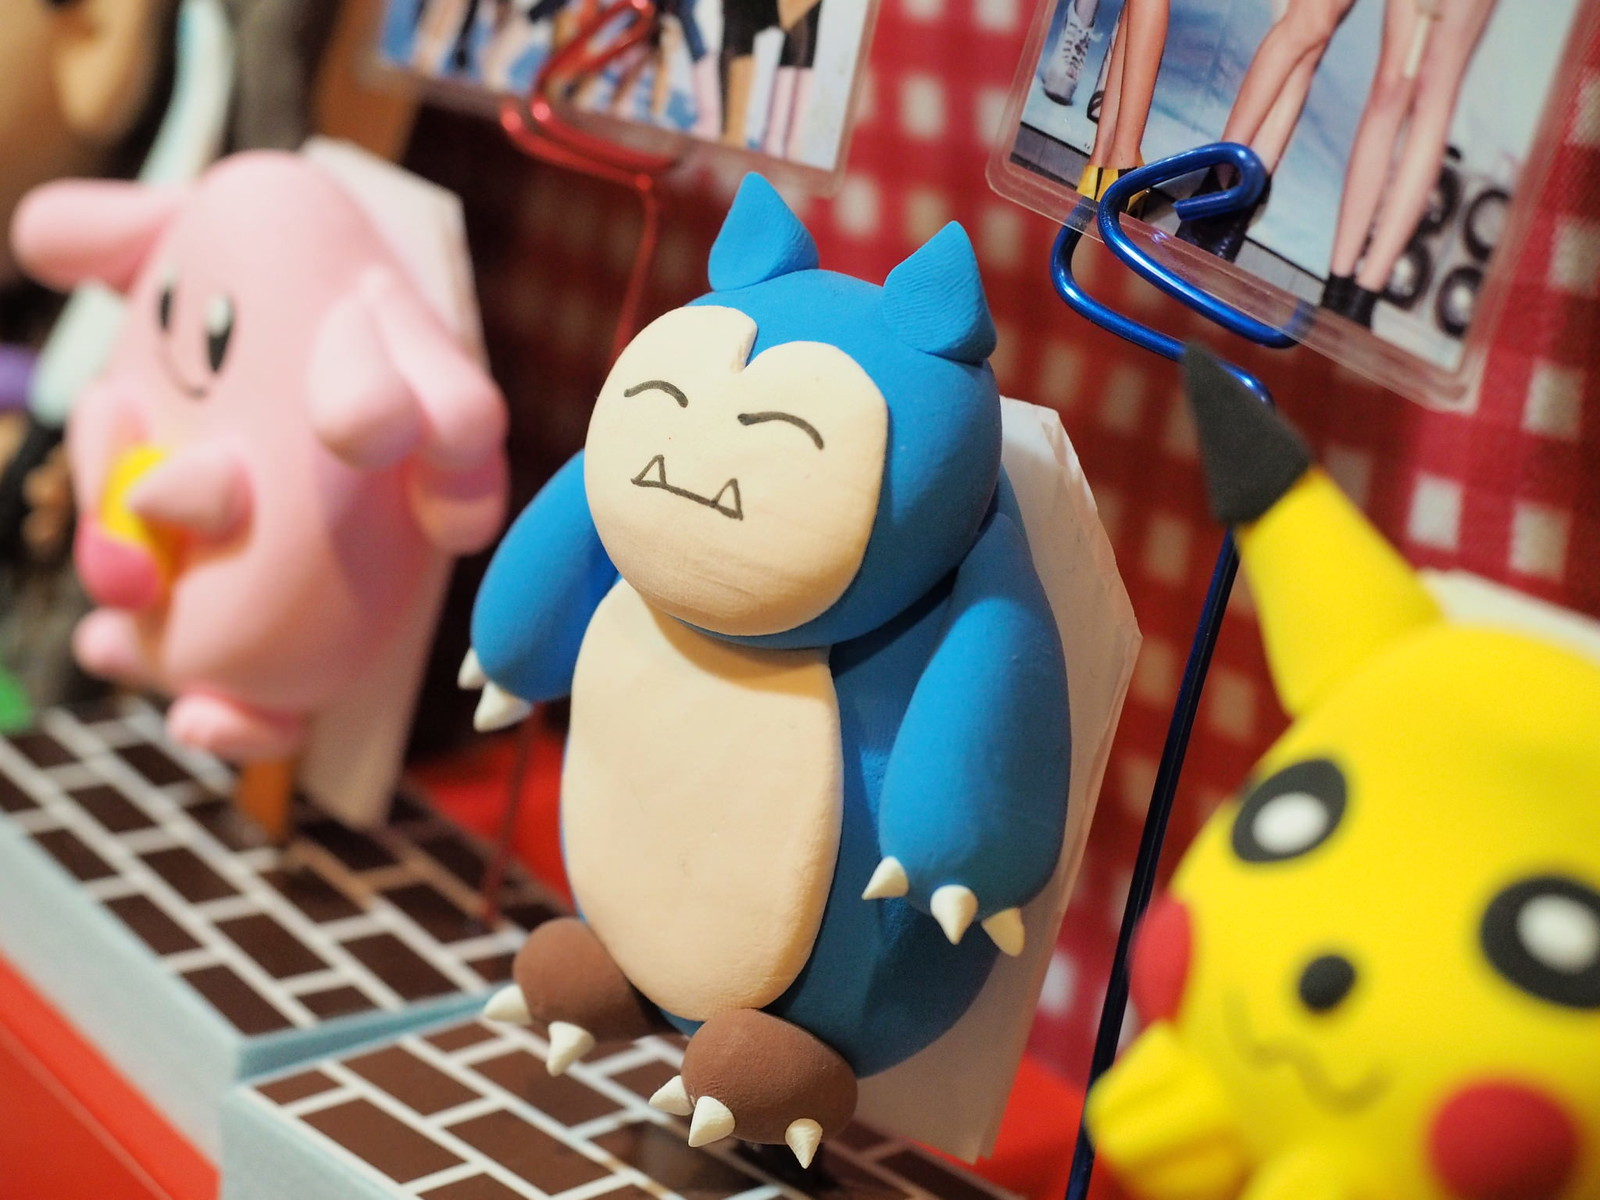 Snorlax is also available here.